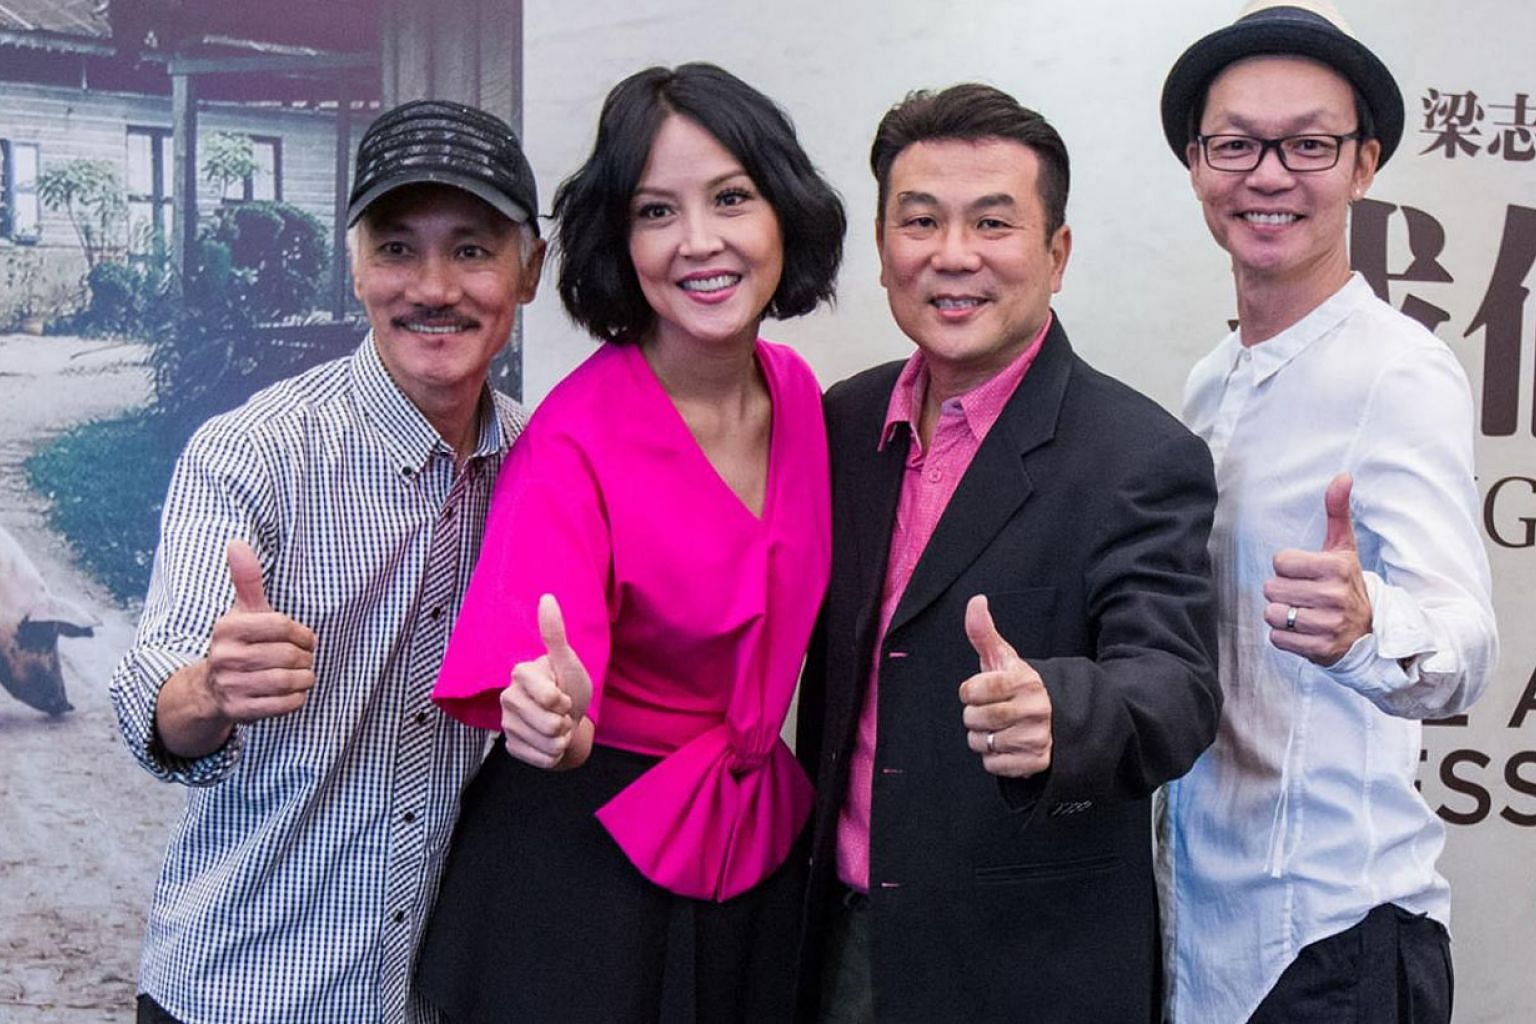 Director Jack Neo's (third from left) upcoming period drama Long Long Time Ago stars (from left) Wang Lei, Aileen Tan and Mark Lee. -- PHOTO: GOLDEN VILLAGE PICTURES